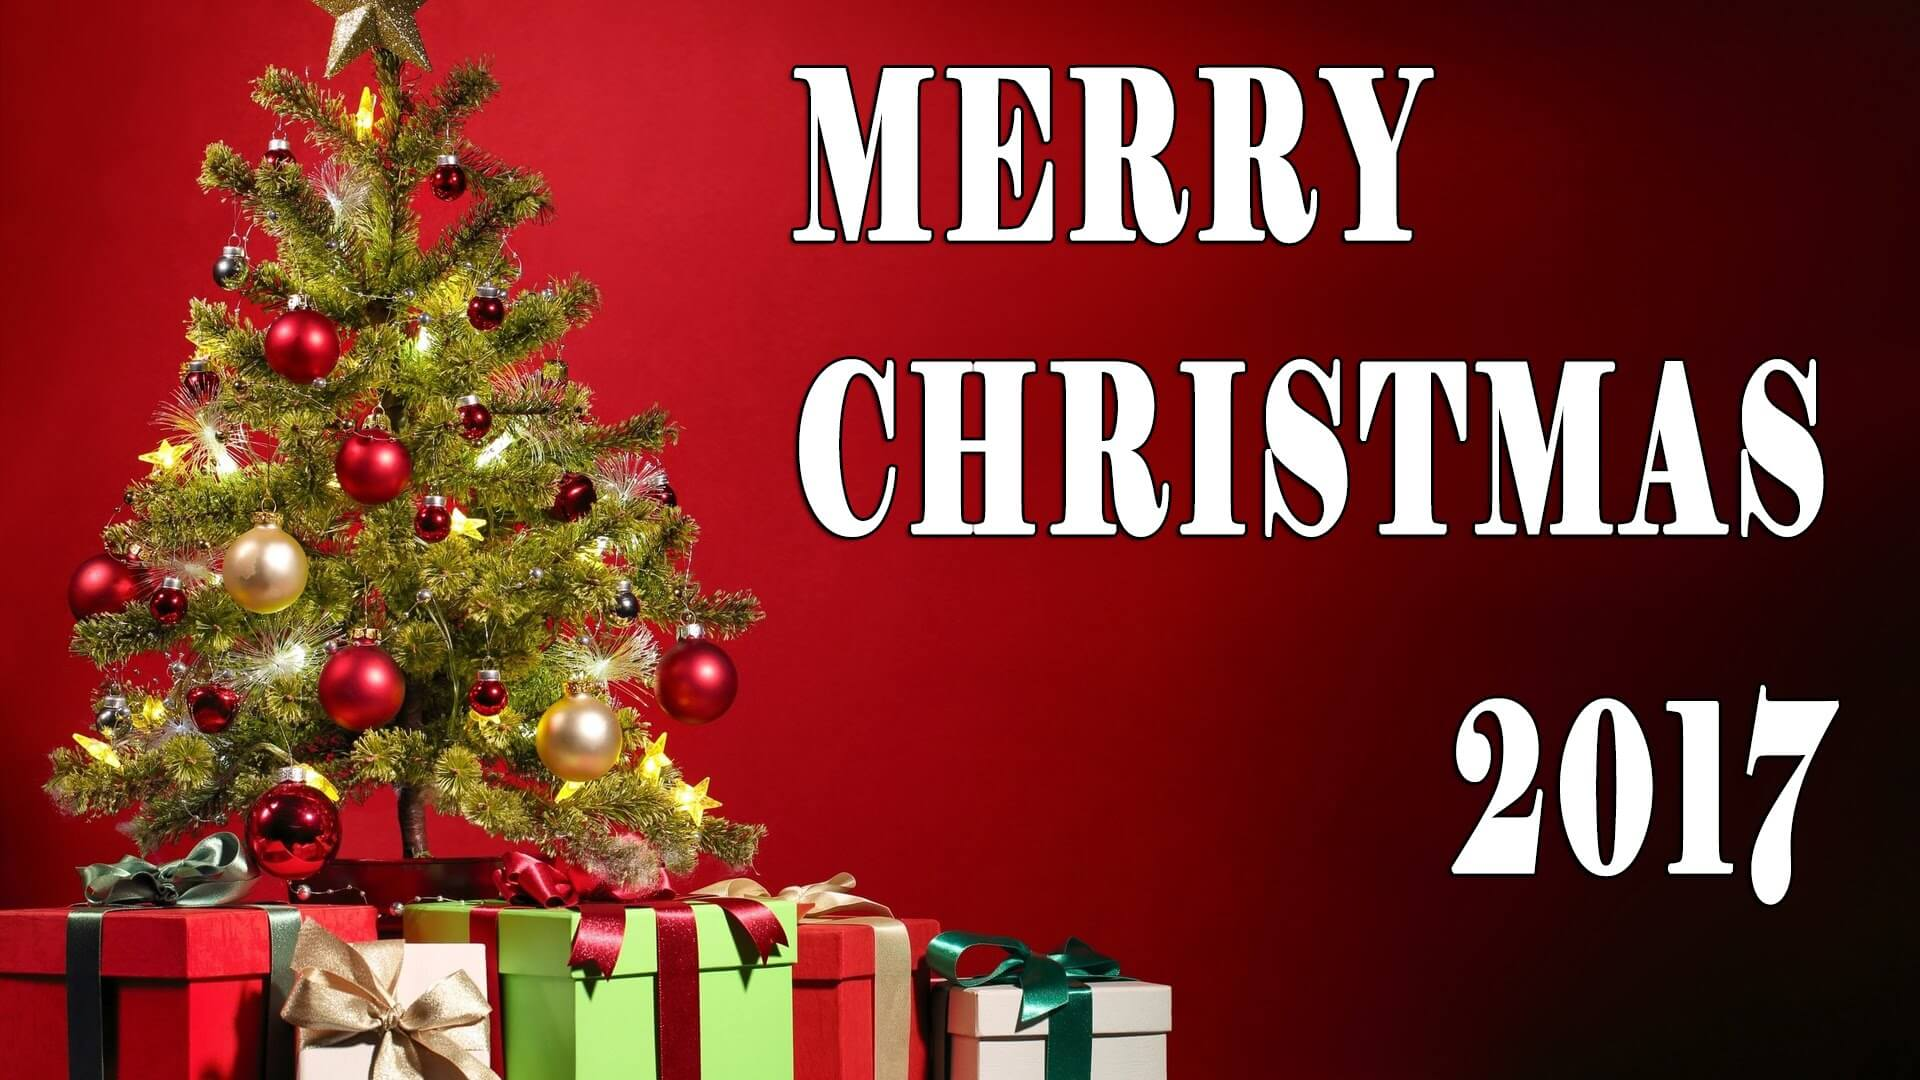 merry christmas images 2017 christmas pictures merry